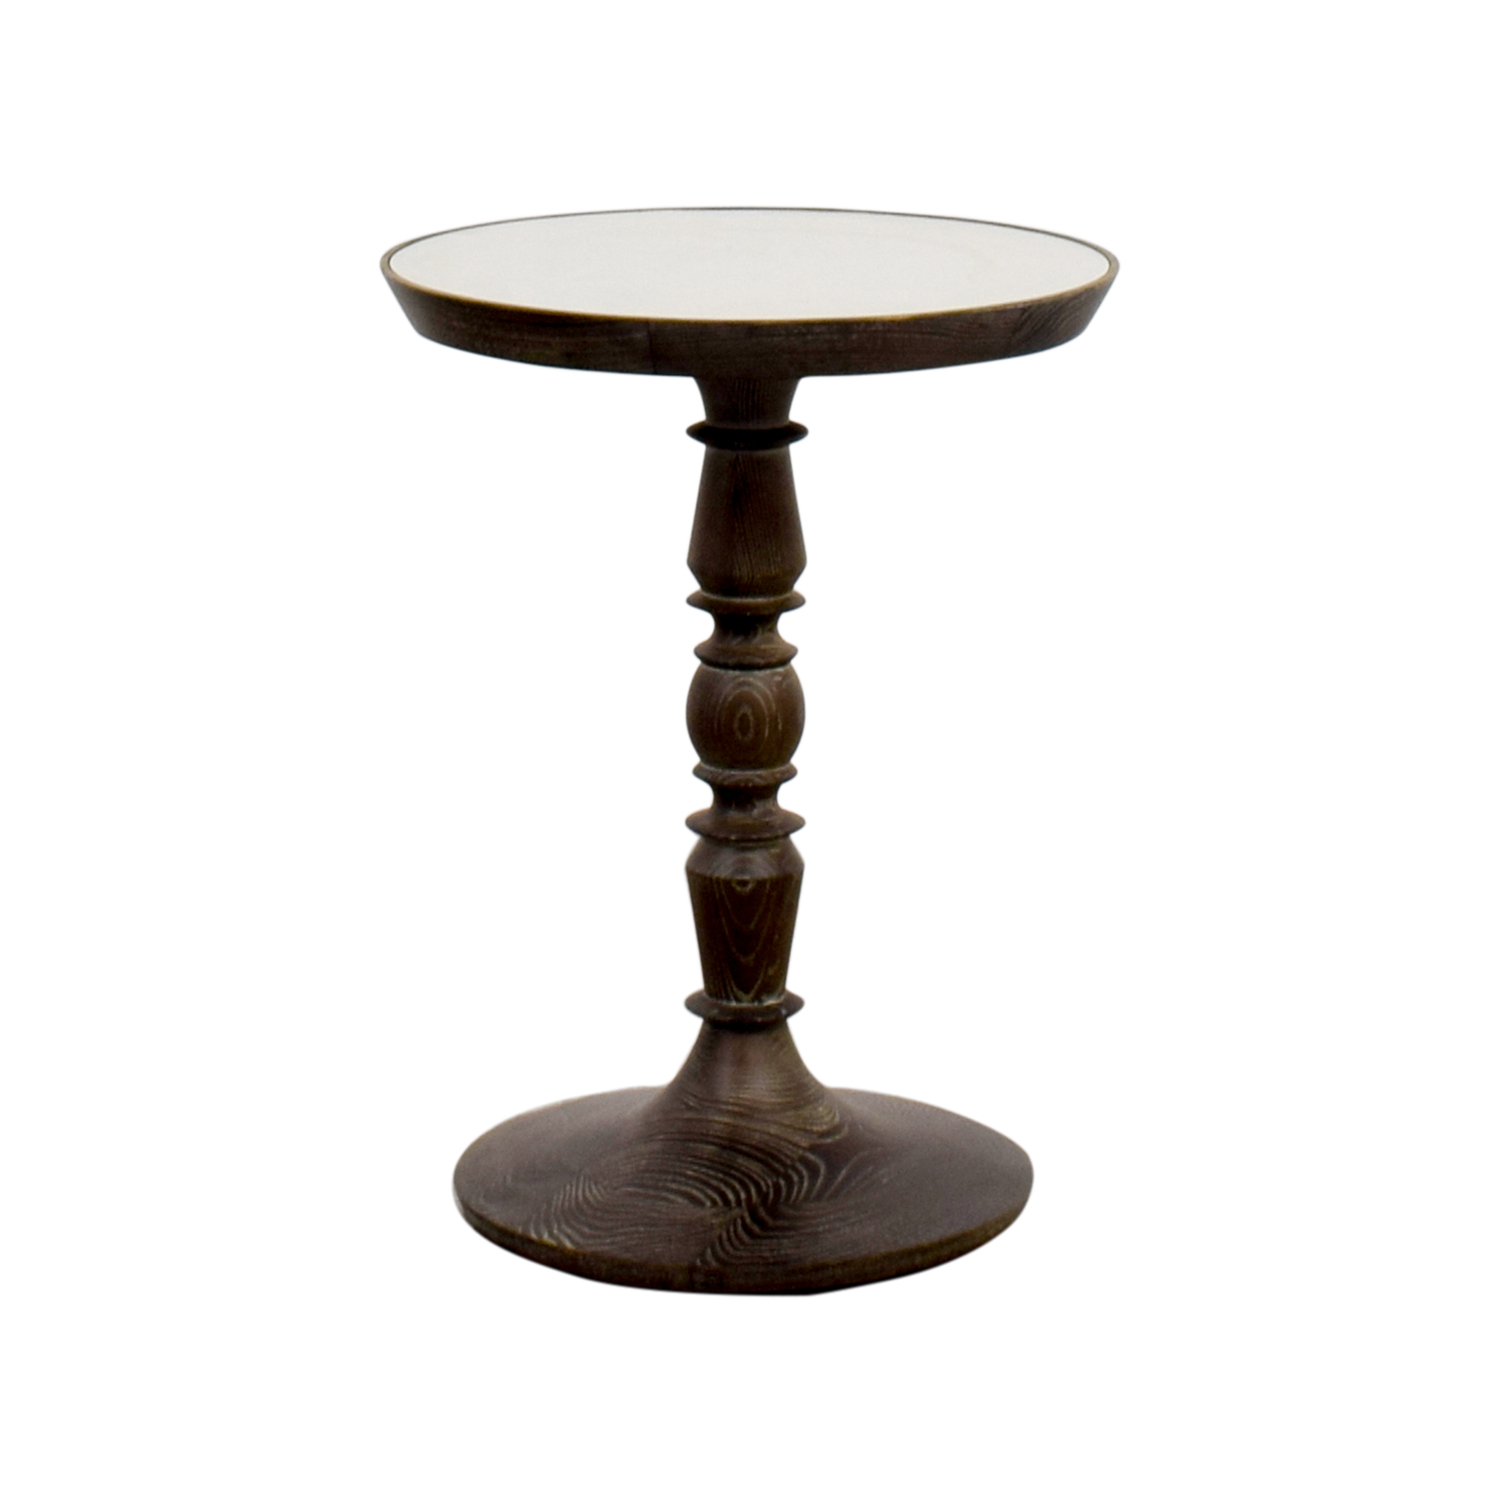 buy Pottery Barn Pottery Barn Mirrored Round End Table online